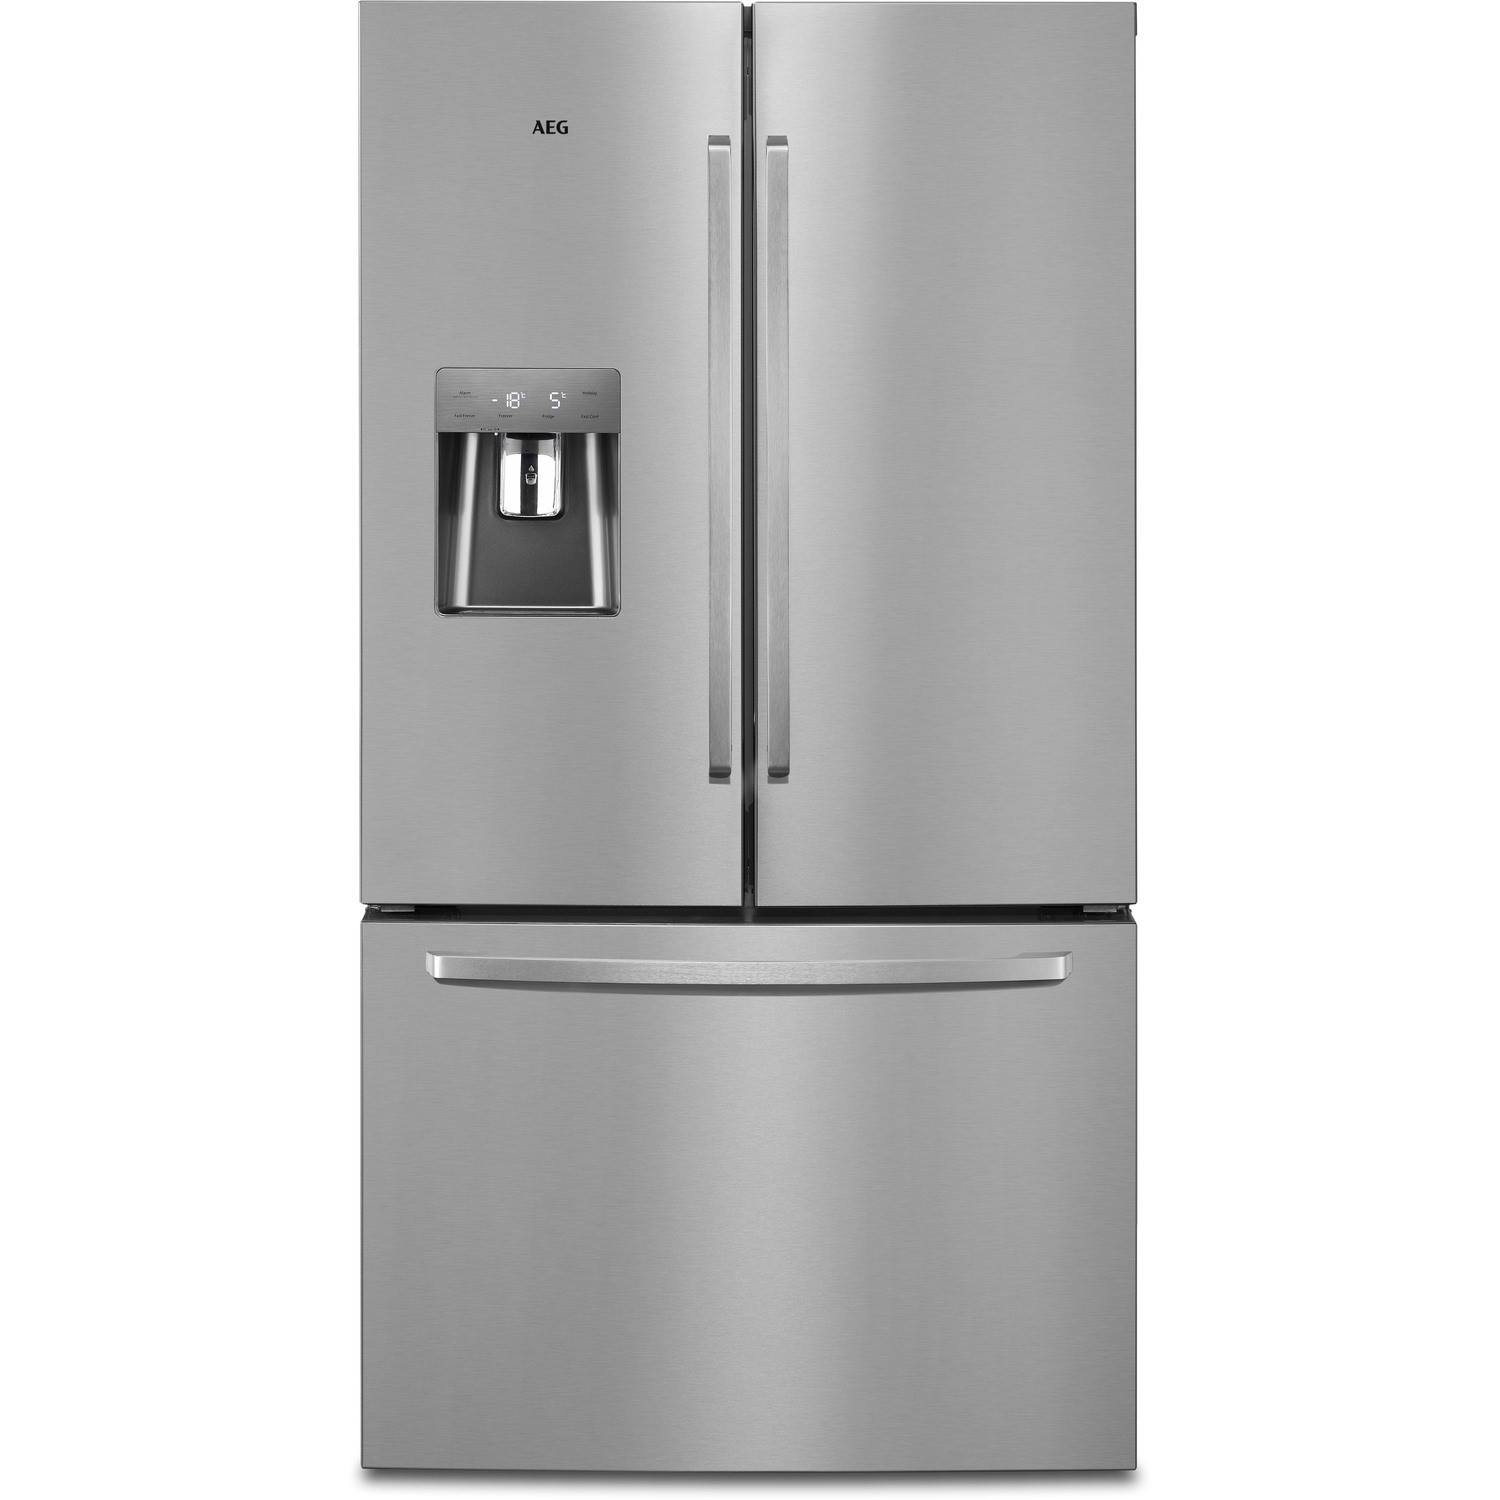 Awesome American Fridge Freezer With Drawers Part - 4: AEG RMB76311NX French Door And Drawer American Fridge Freezer Silver With  Antifingerprint Stainless Steel Doors